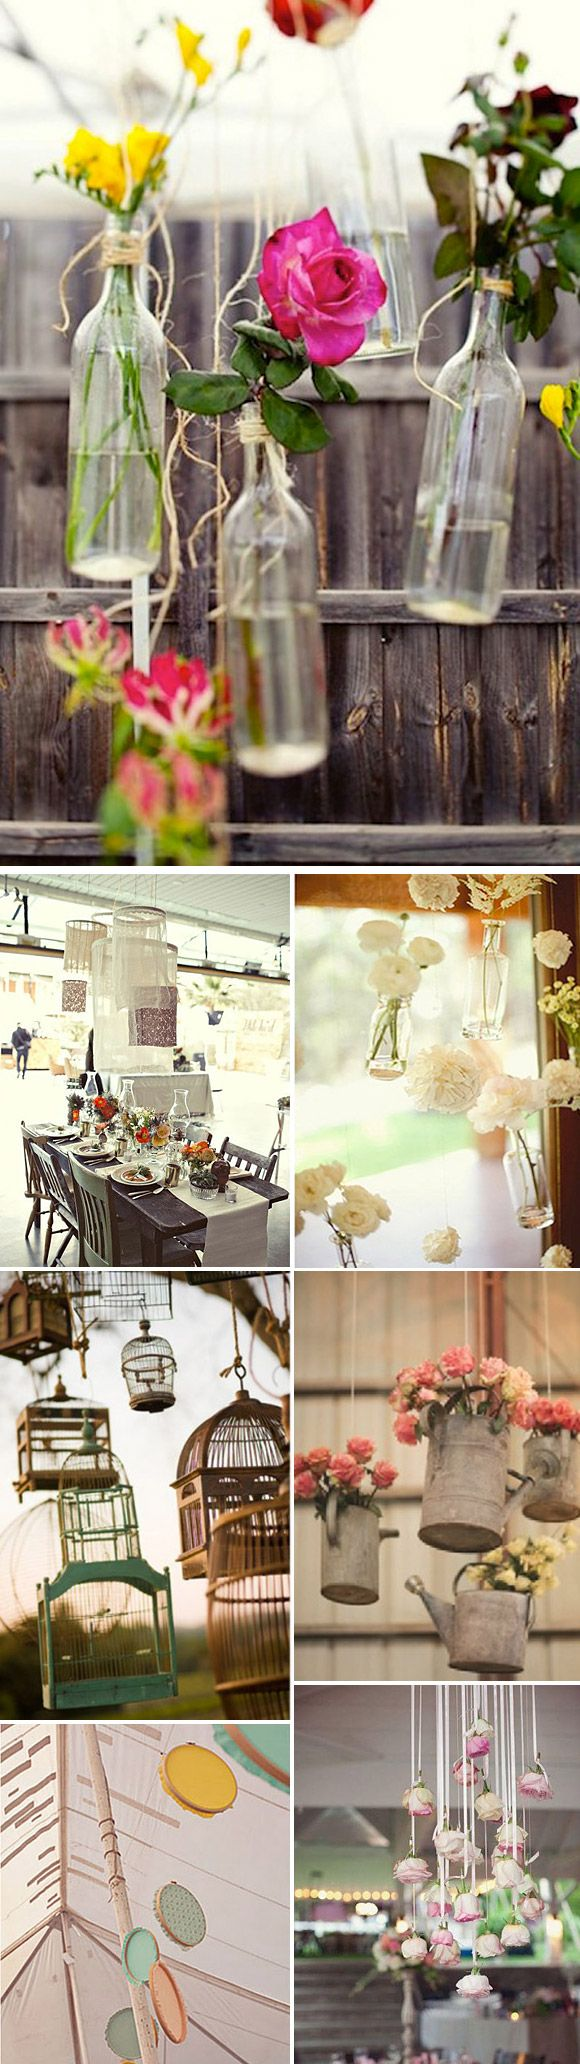 1000 images about deco on pinterest ladder battery - Decoracion para bodas vintage ...